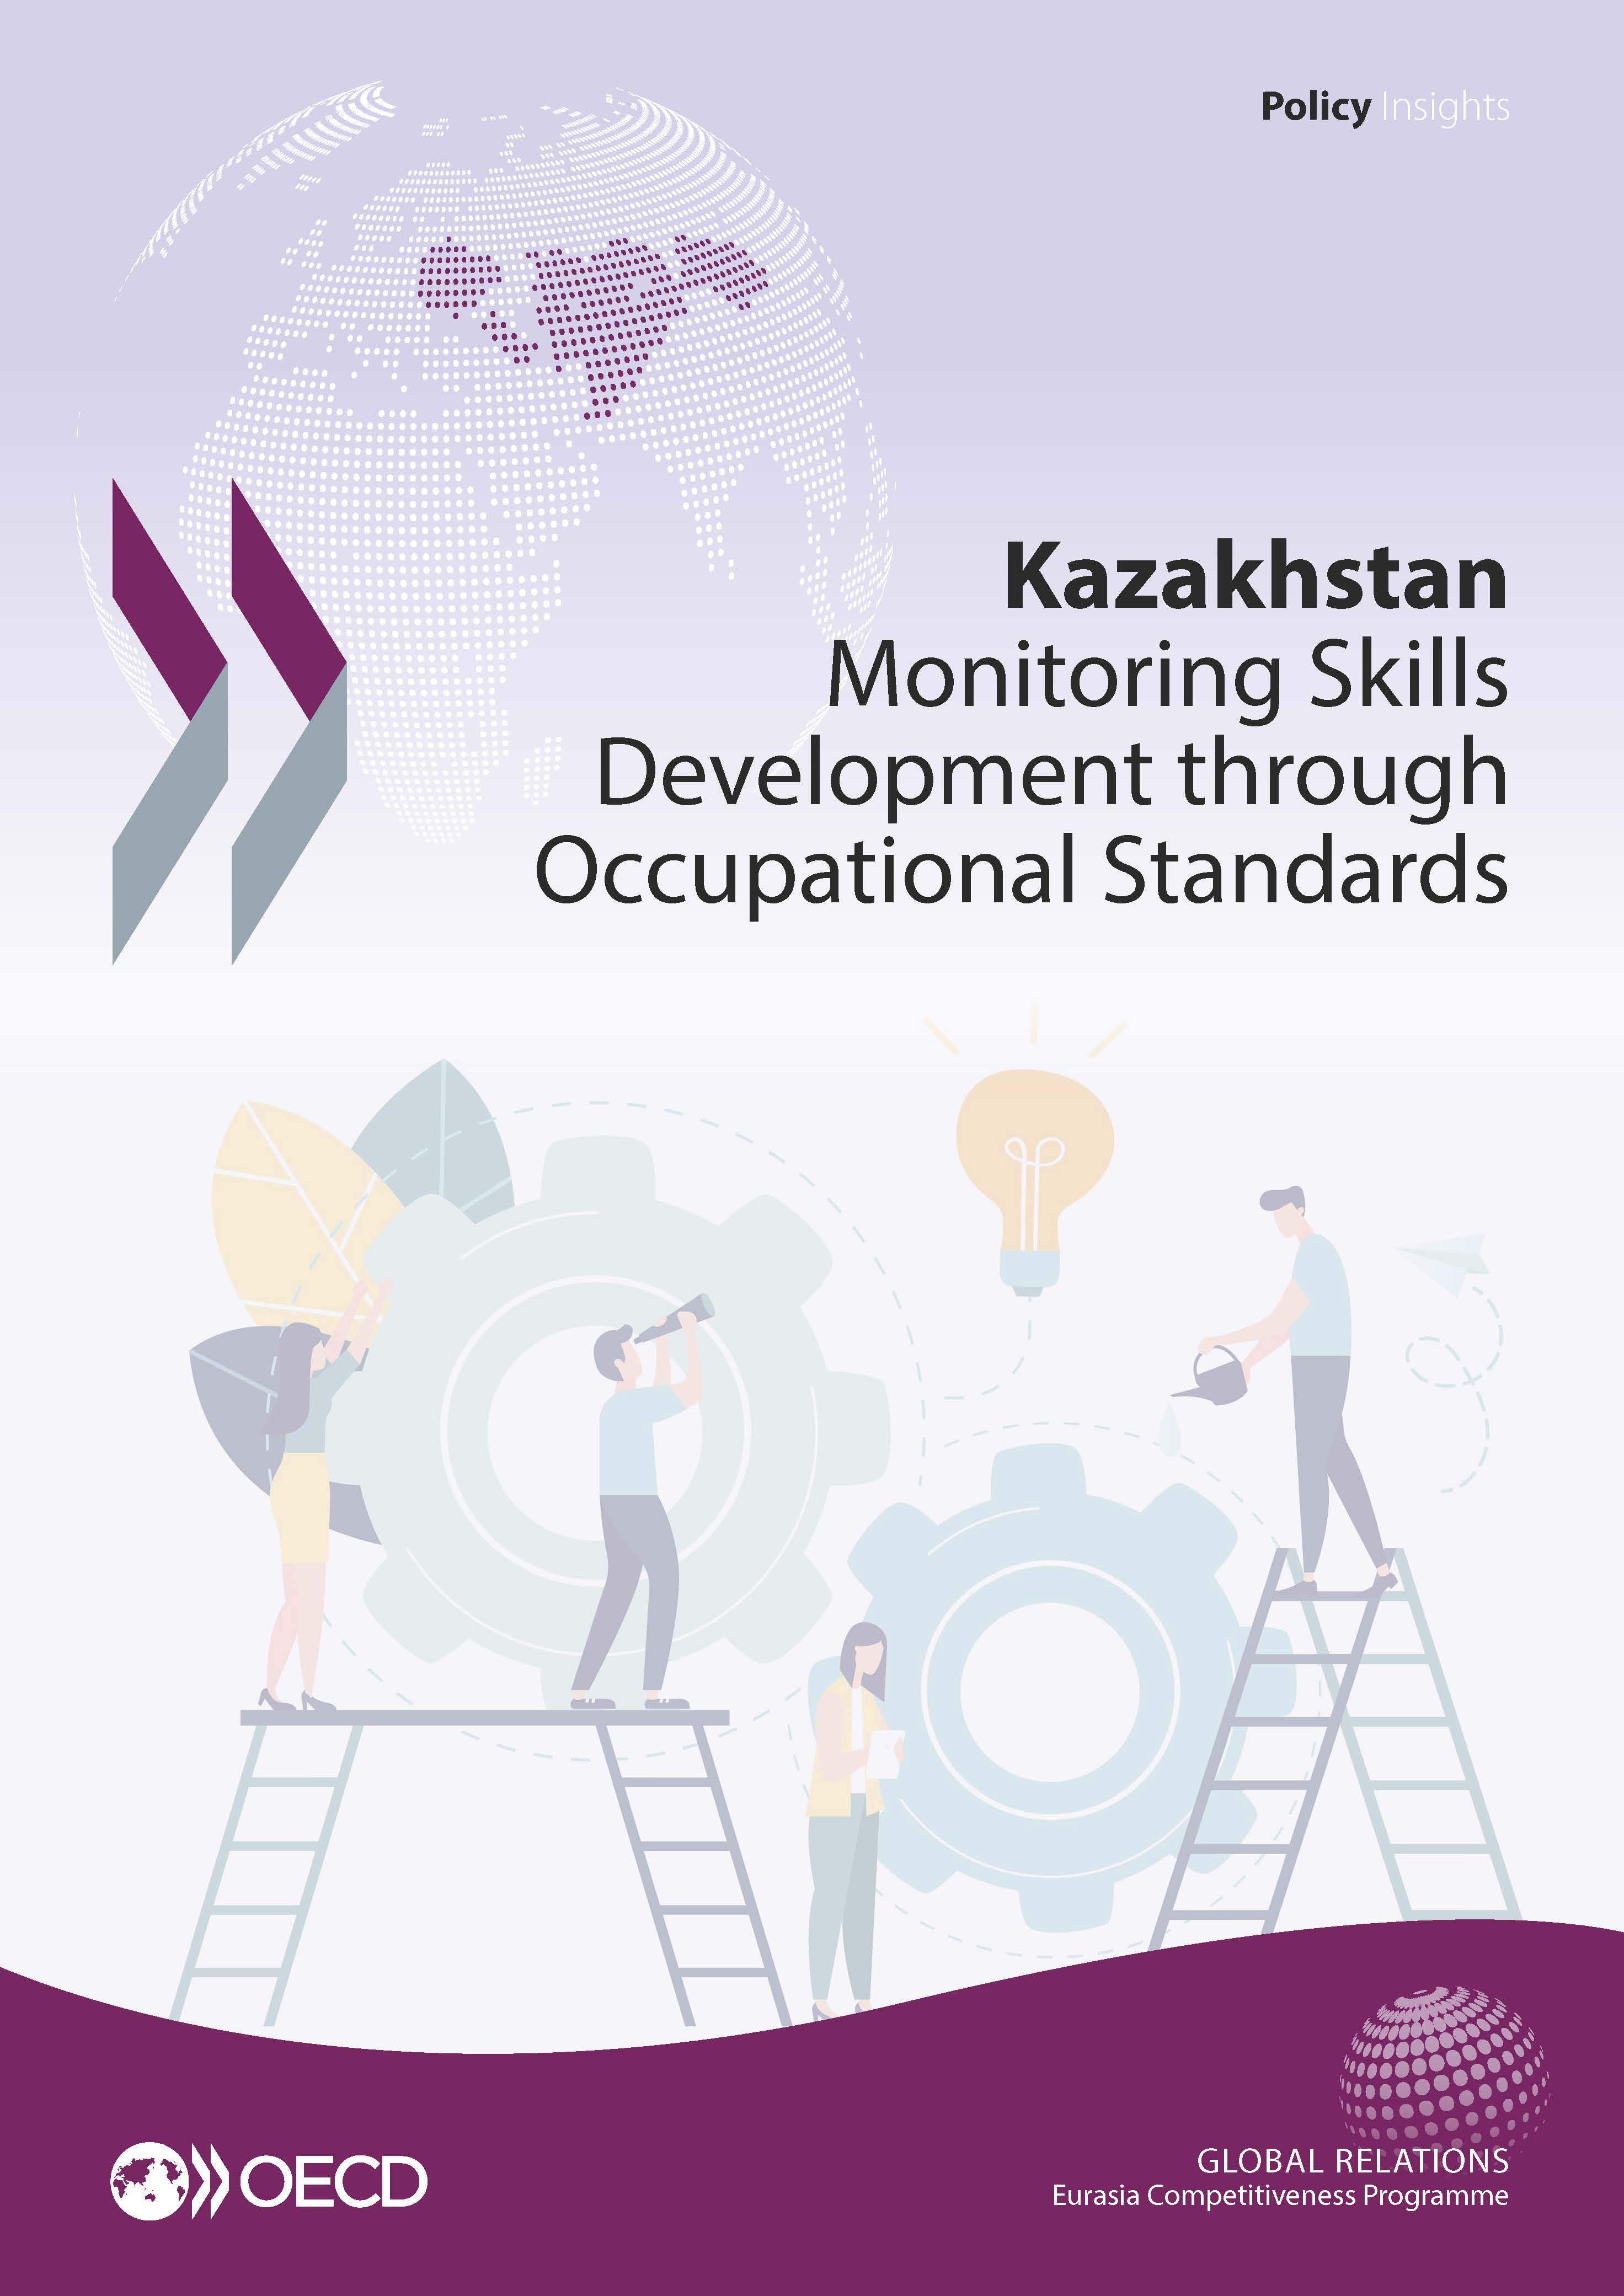 Kazakhstan Monitoring Skills Development Through Occupational Standards